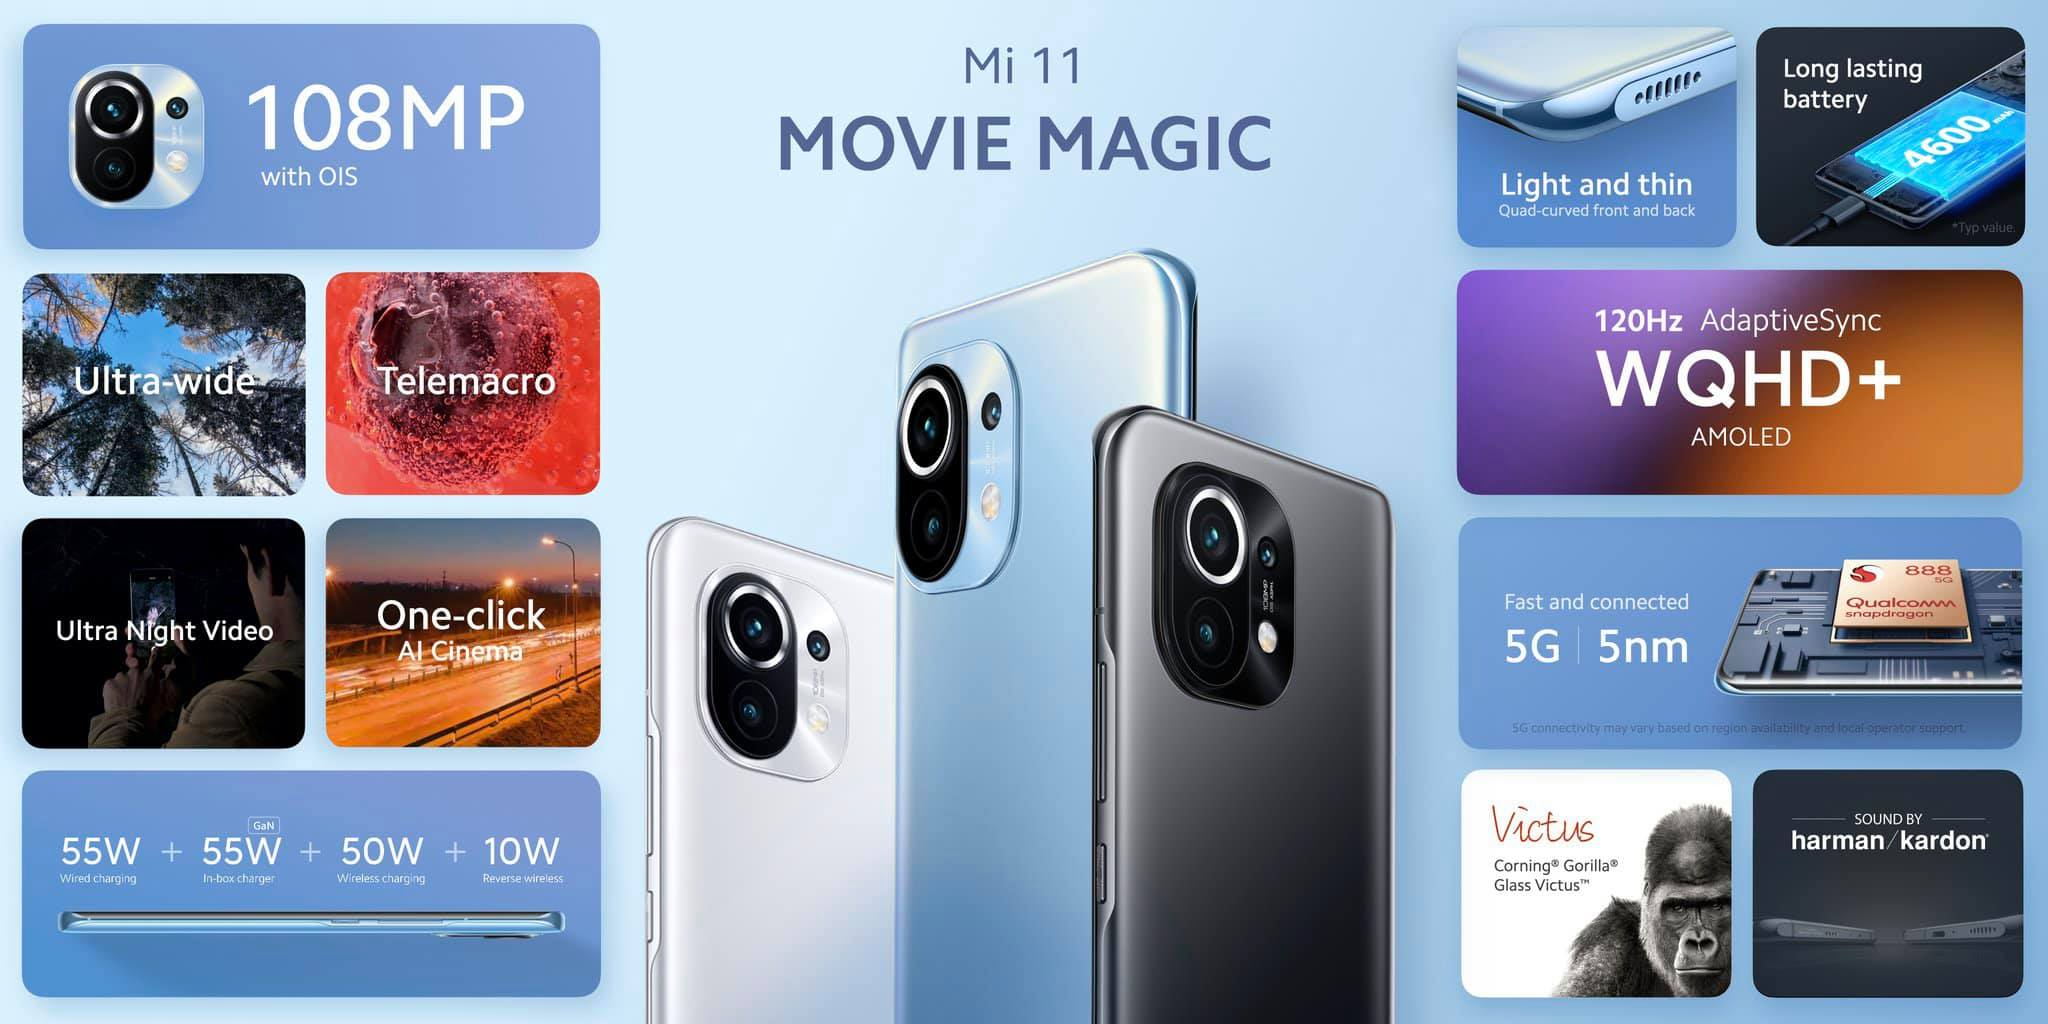 Sforum - Latest technology information page 147015673_1070520646800661_8458941589814345998_o Xiaomi Mi 11 international version launched: With 55W charger included, 12GB RAM option removed, price from 20.7 million VND